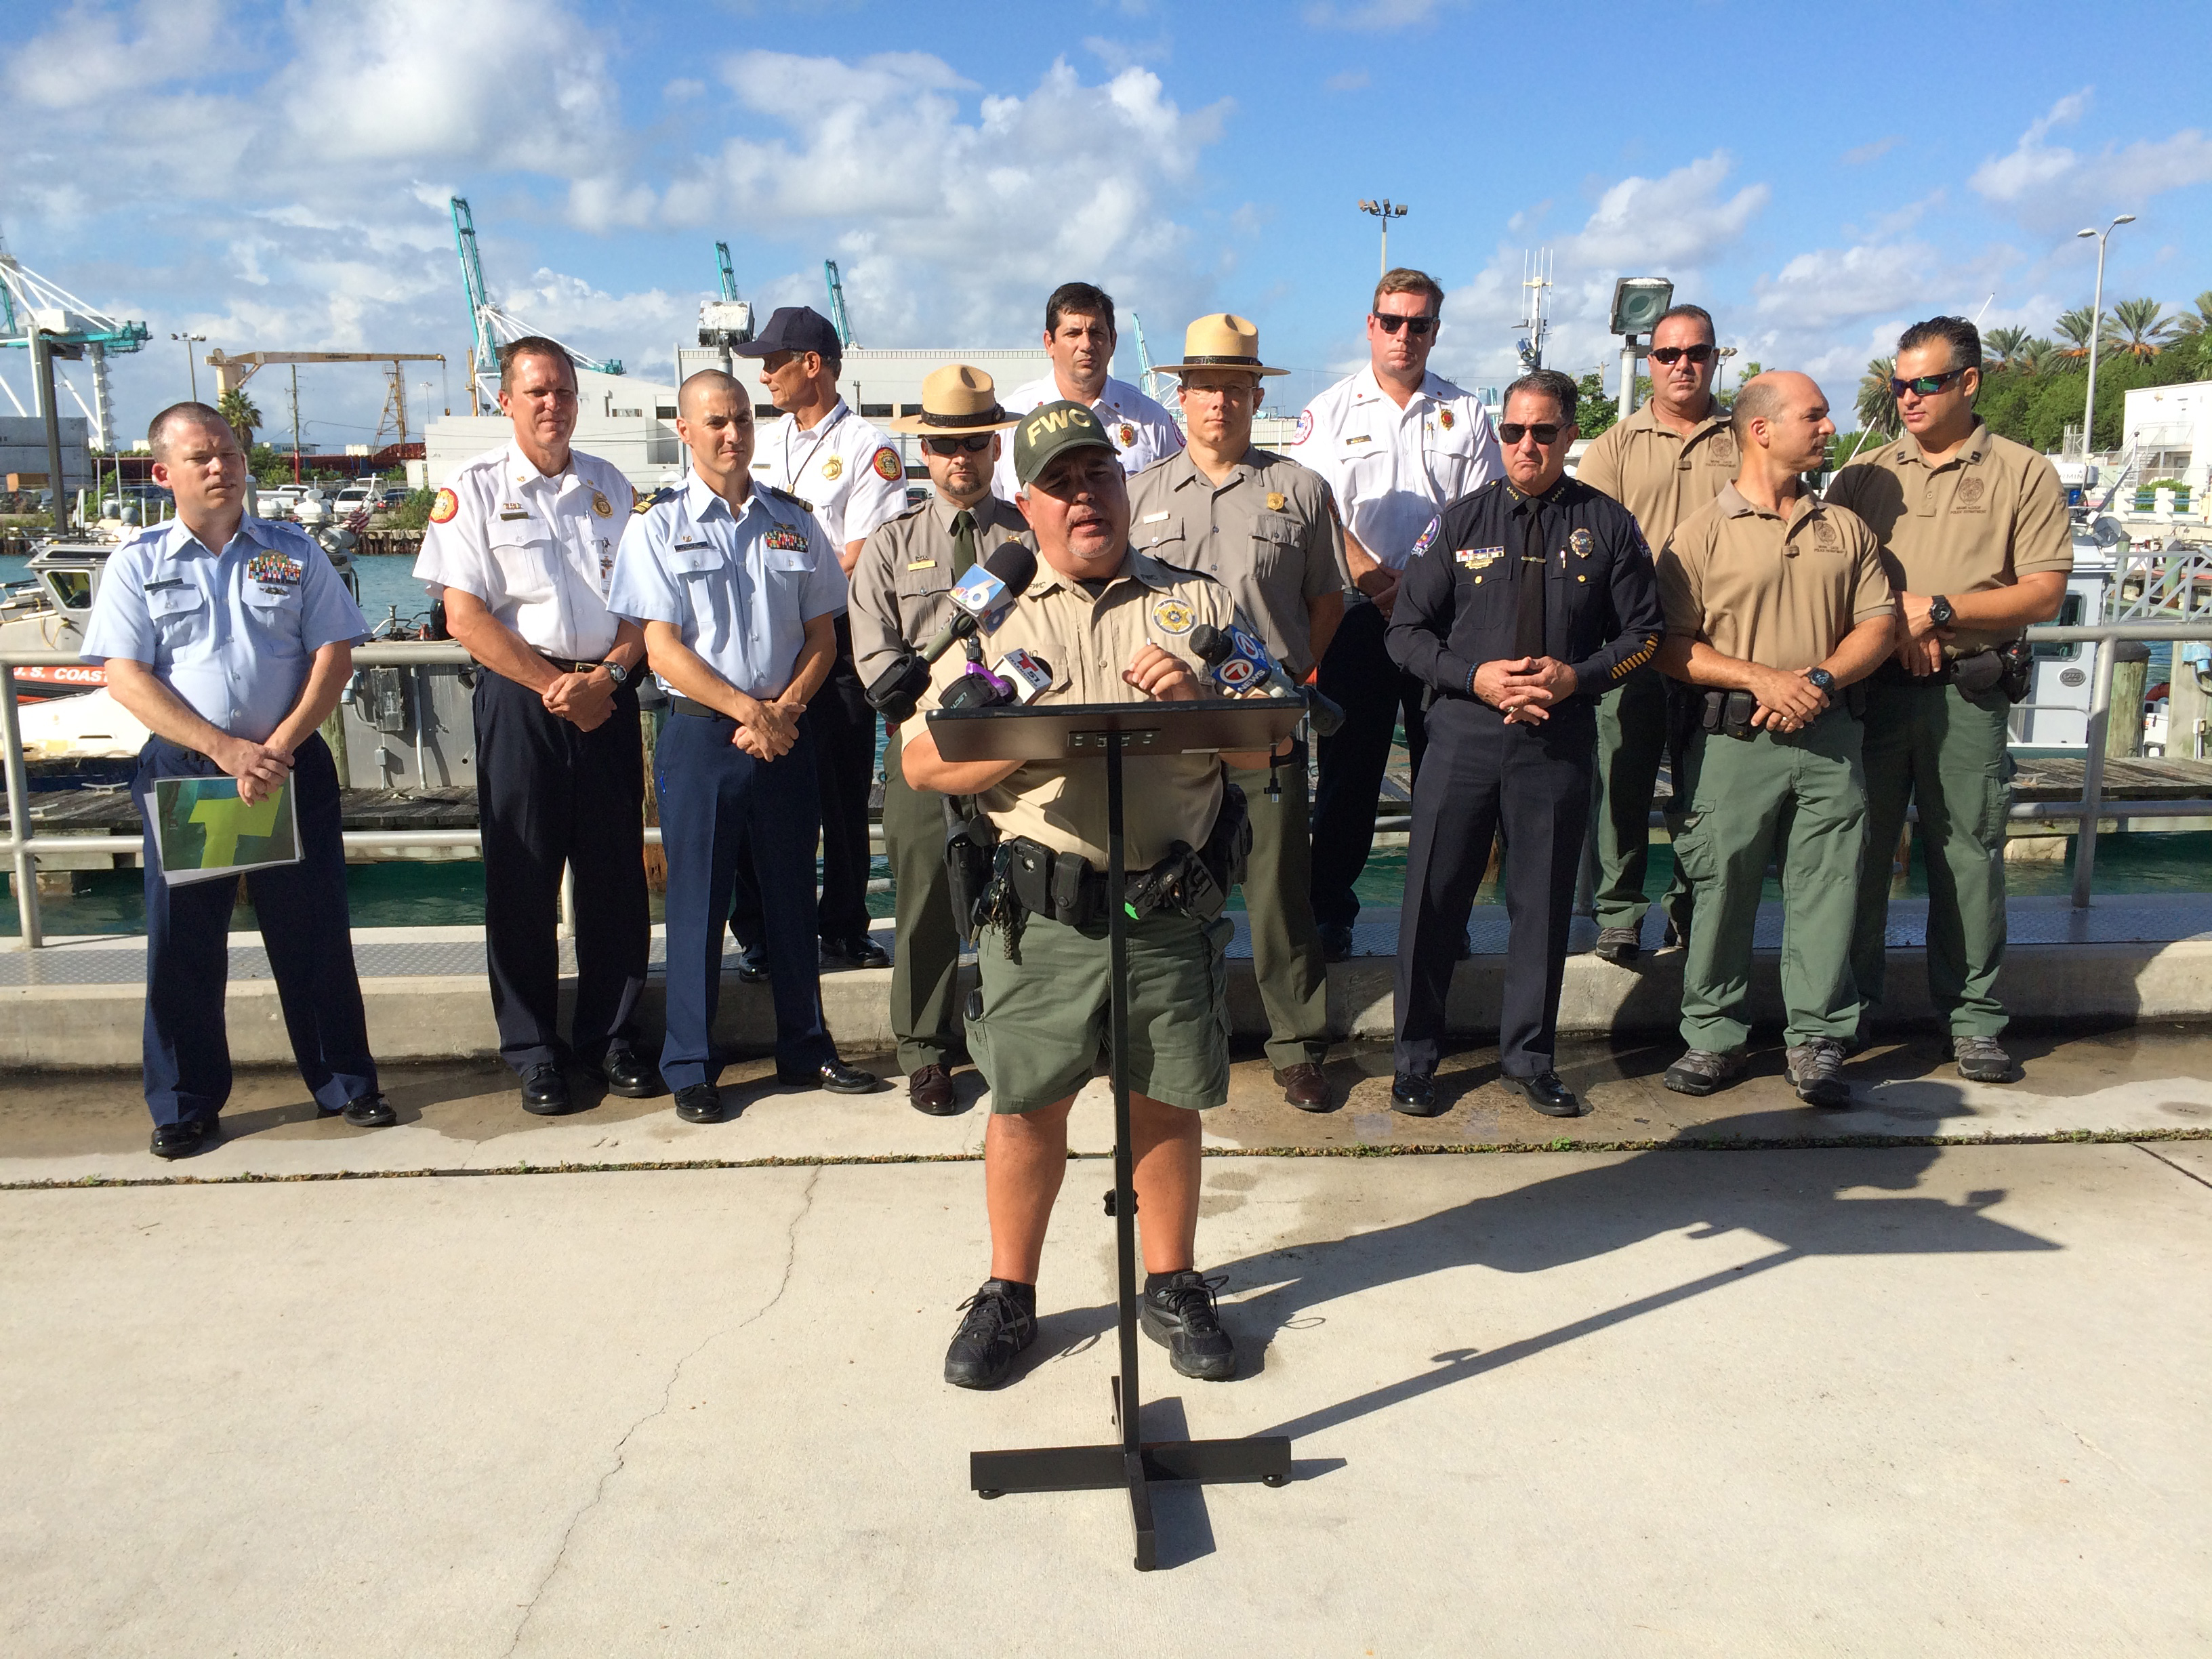 U s coast guard adds new slow speed zone ahead of for Florida fish and wildlife officer